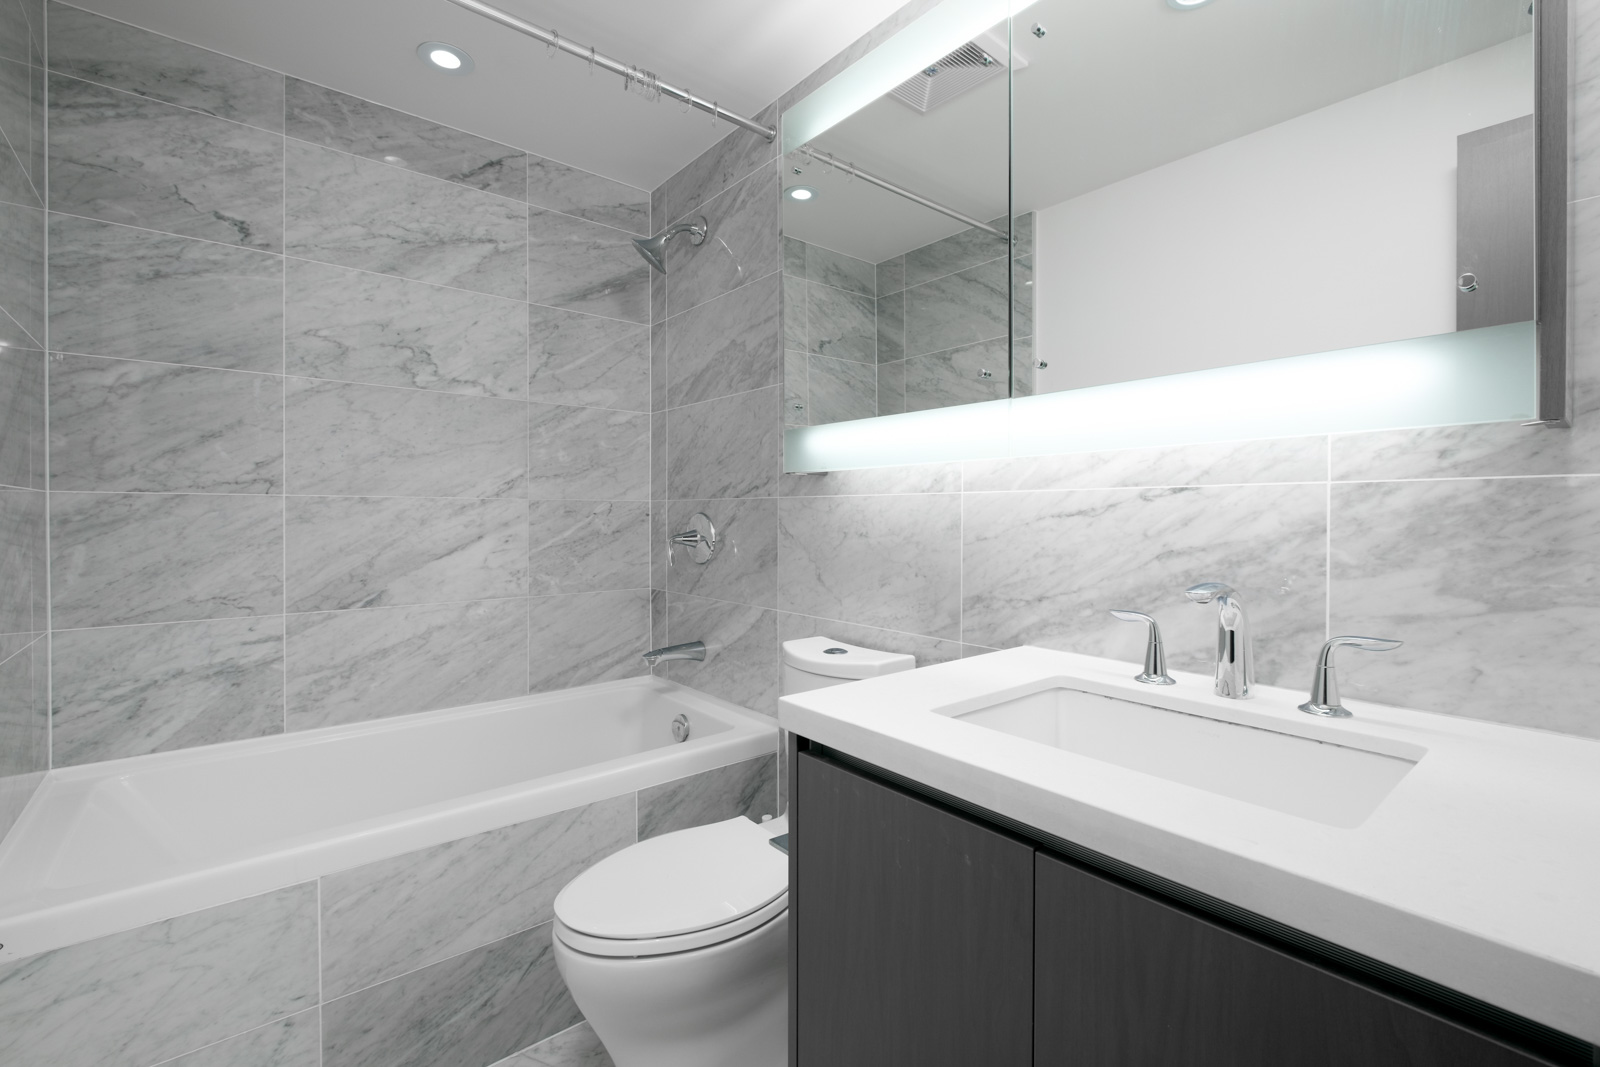 bathroom with white walls and tile floors in rental condo in the metrotown neighborhood of Burnaby